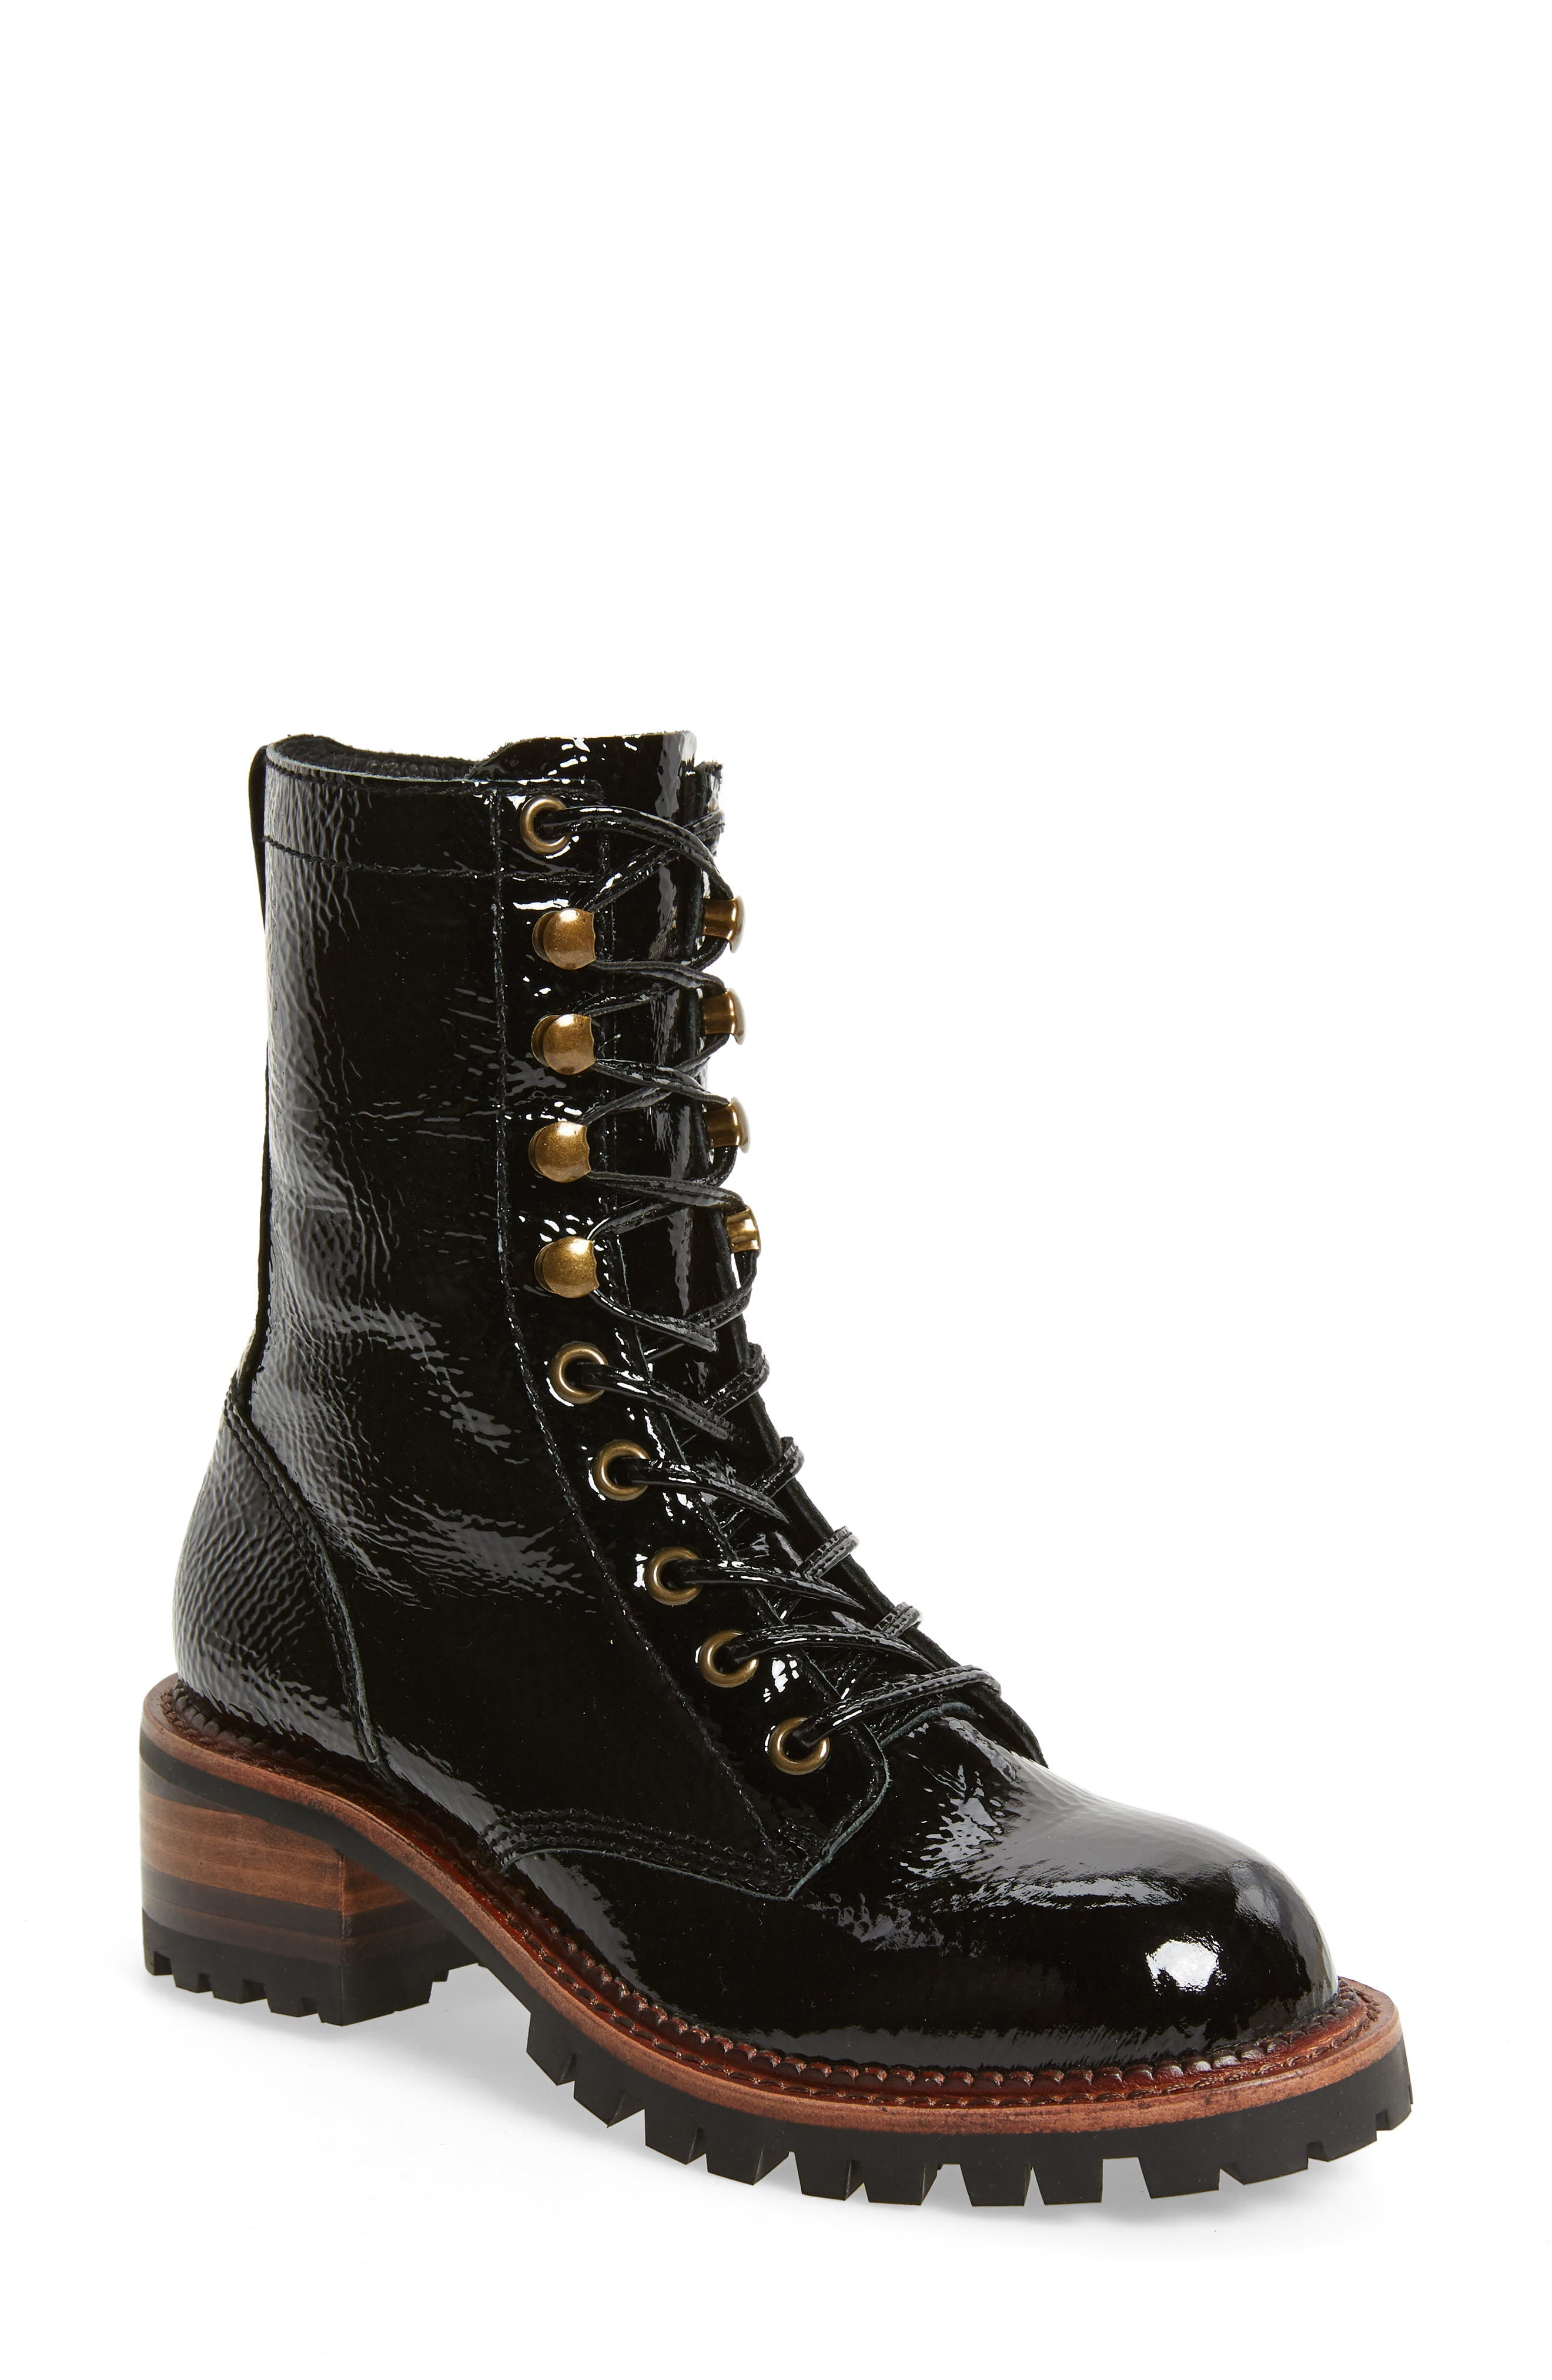 Sycamore Patent Leather Boot,                             Main thumbnail 1, color,                             BLACK CRINKLE PATENT LEATHER